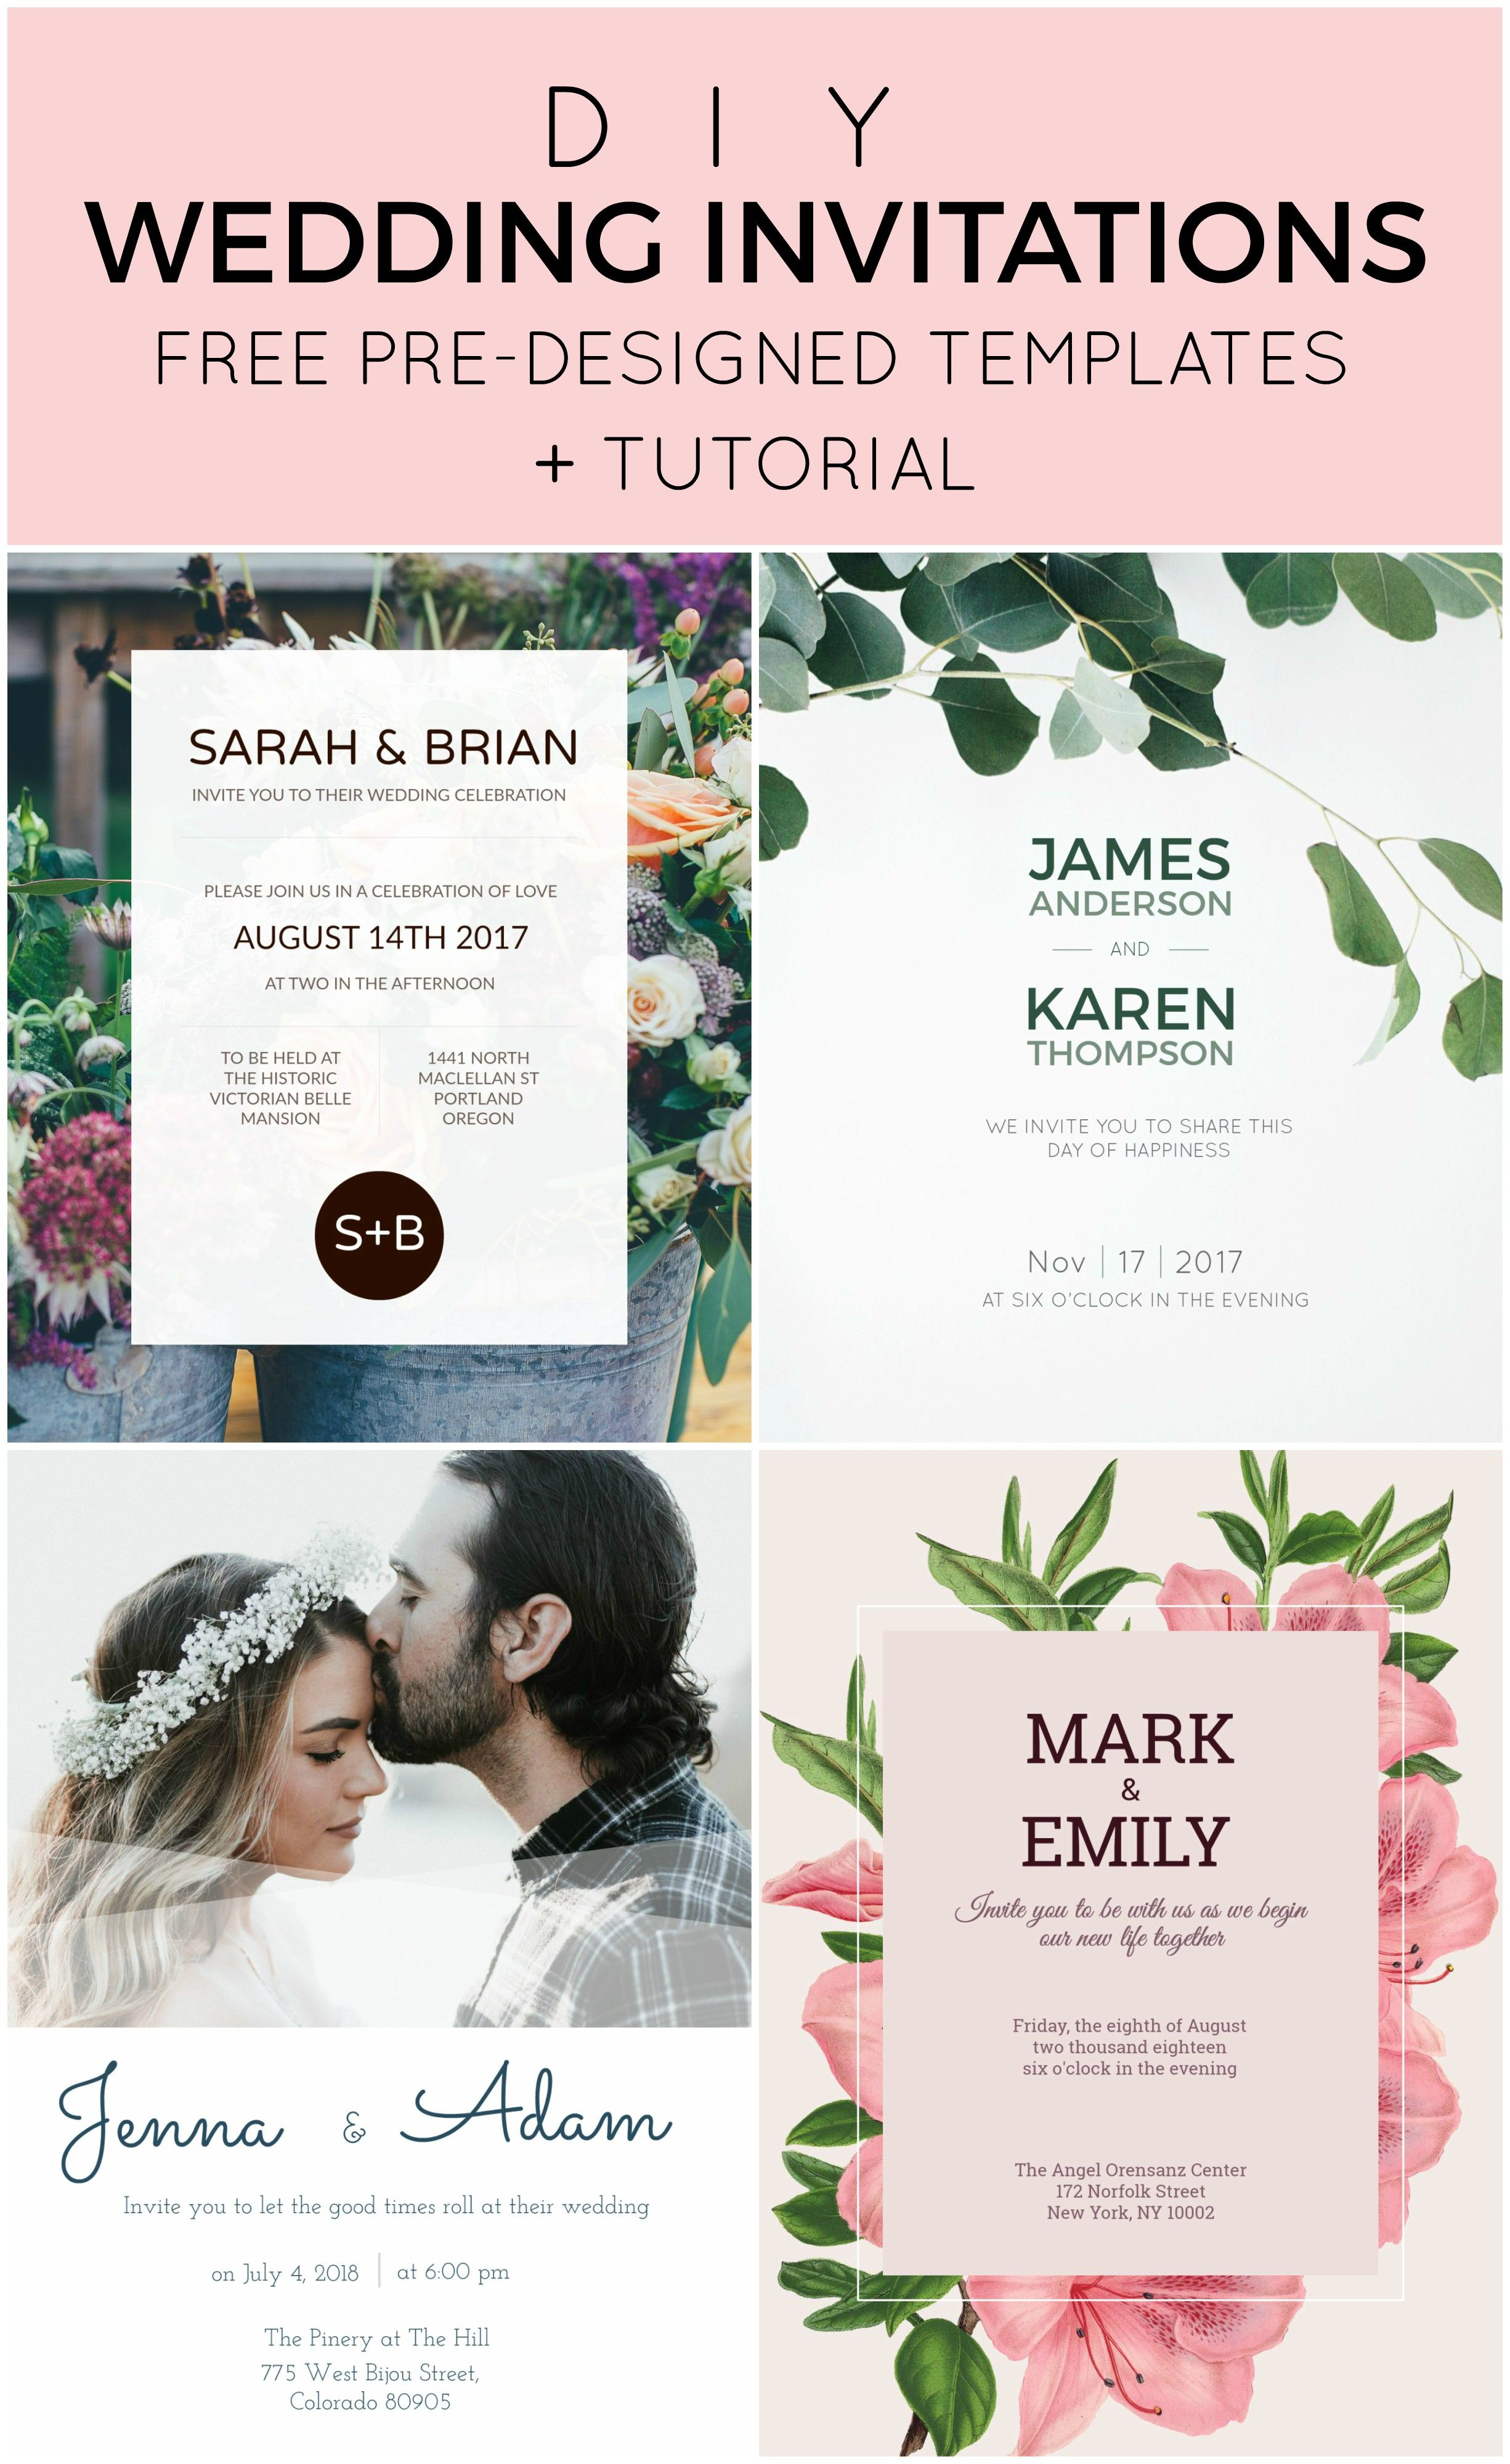 Save With These DIY Wedding Invitation Templates Theyre Pre - Pre wedding invitation templates